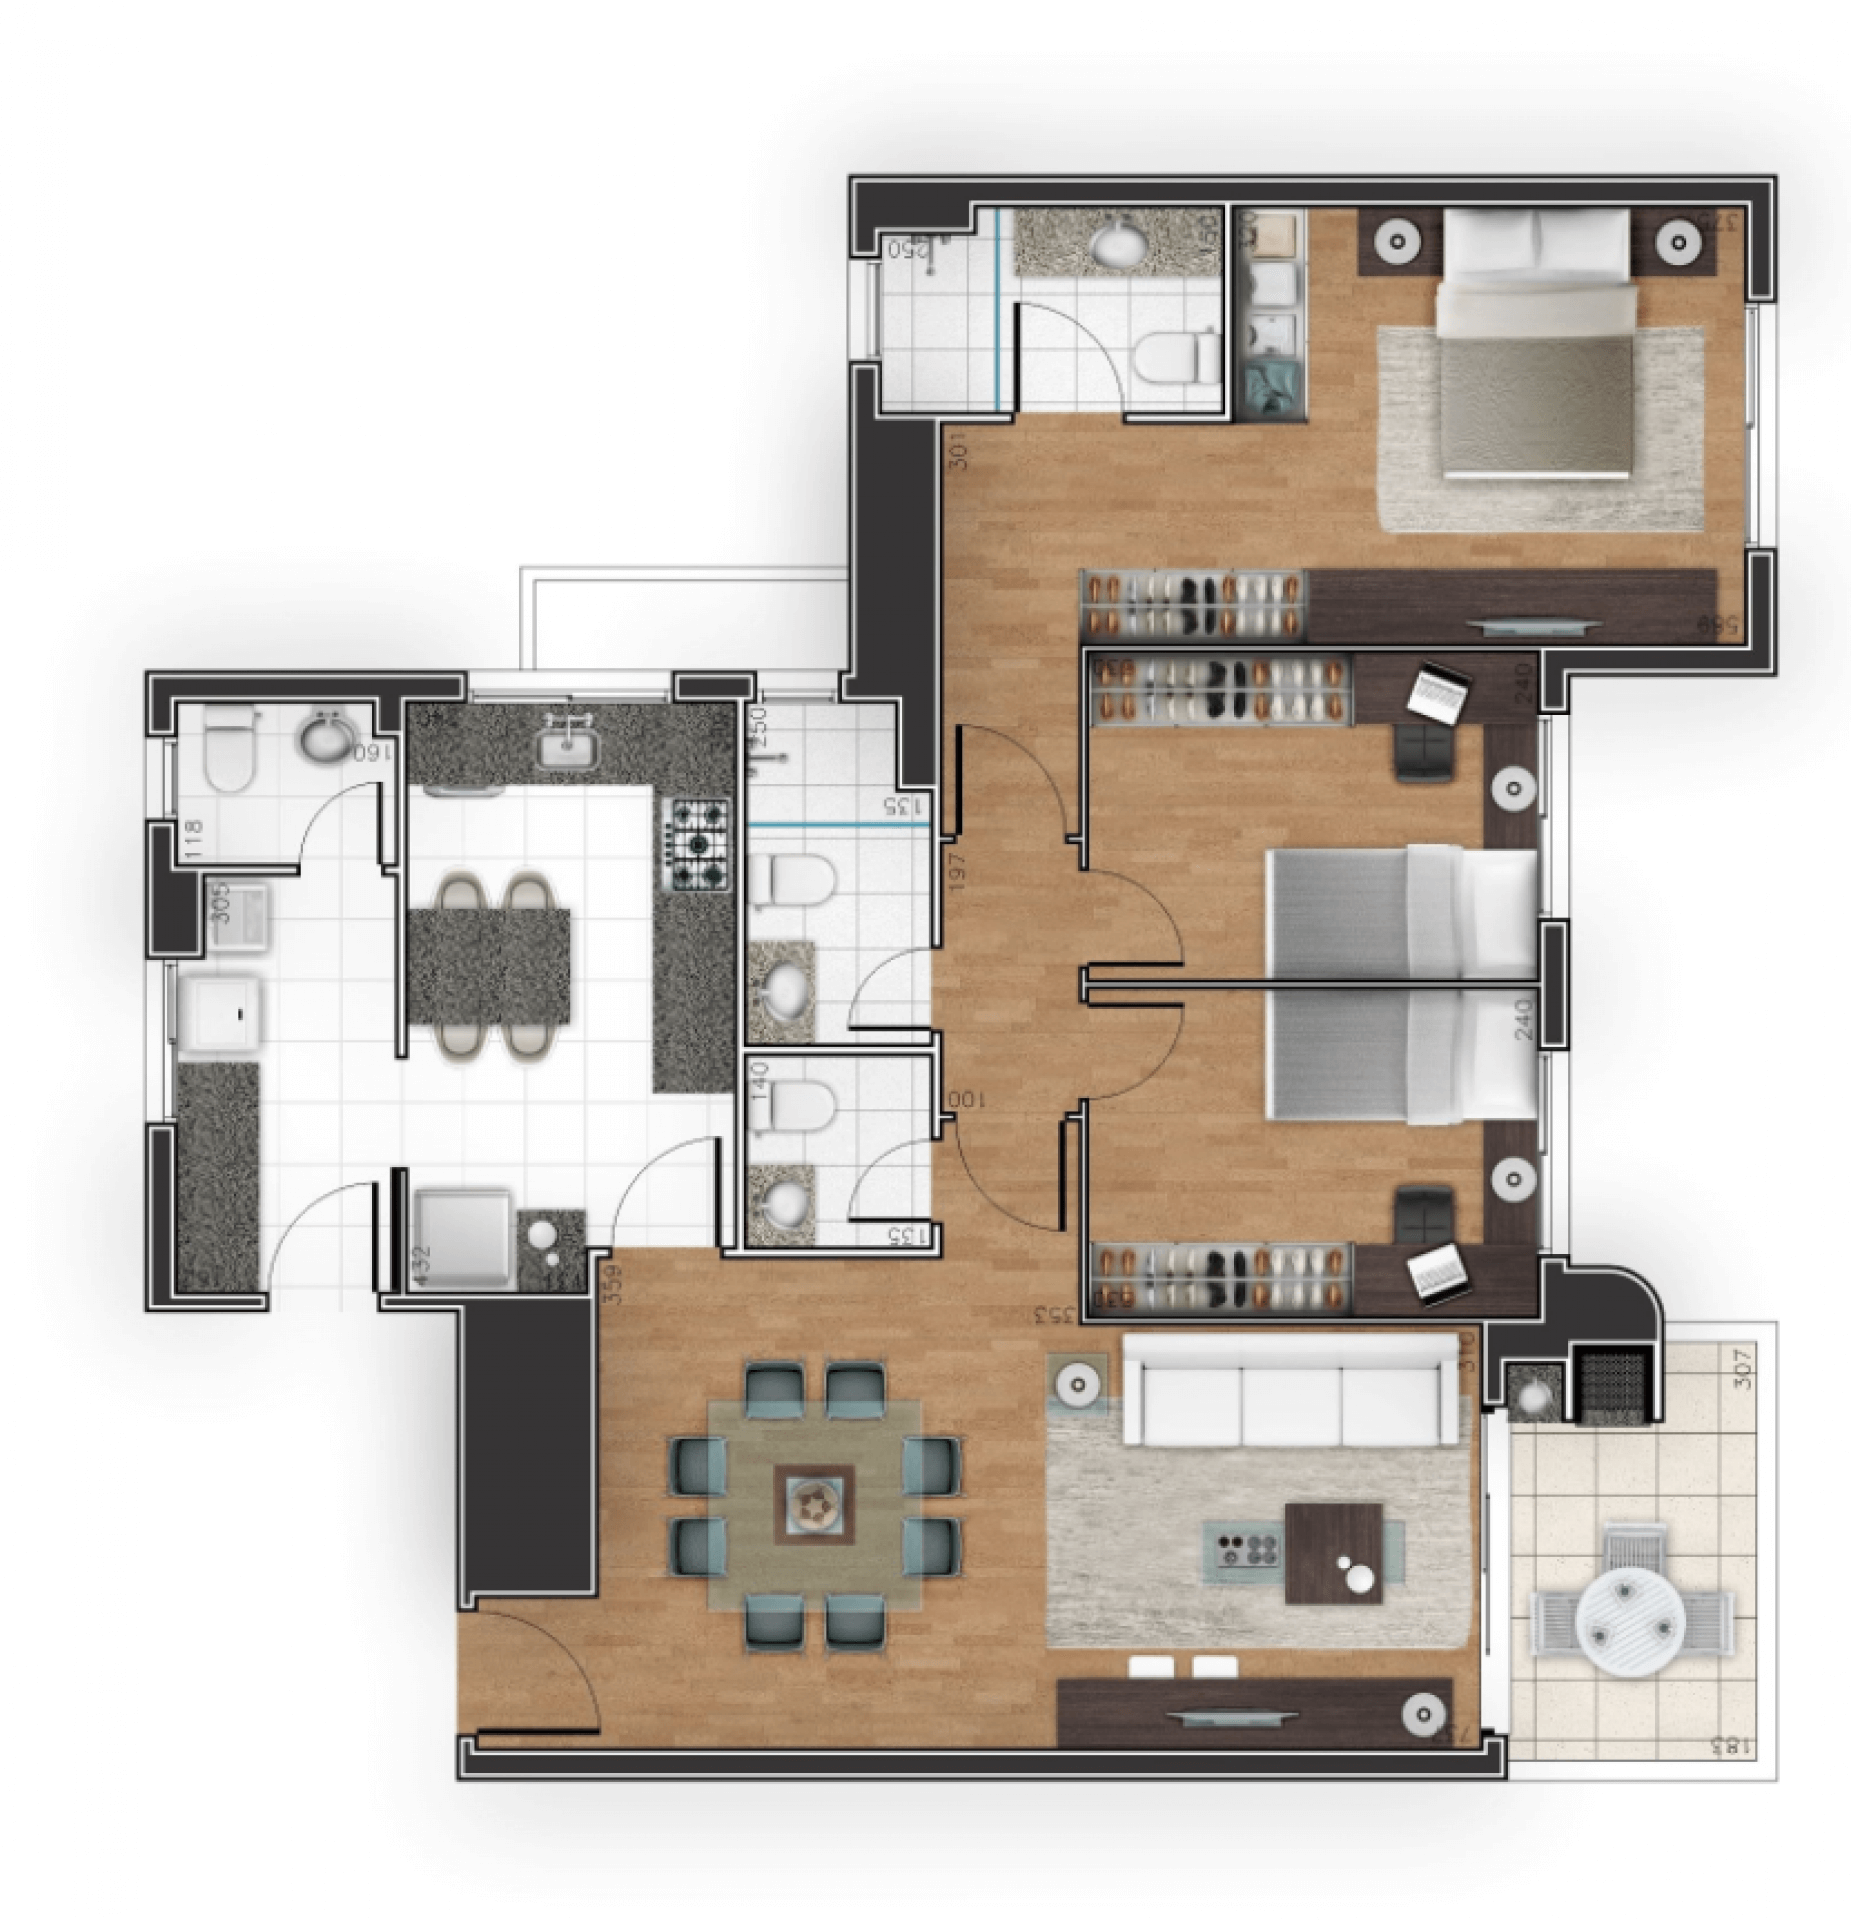 Planta do Terrasse Normandie. floorplan